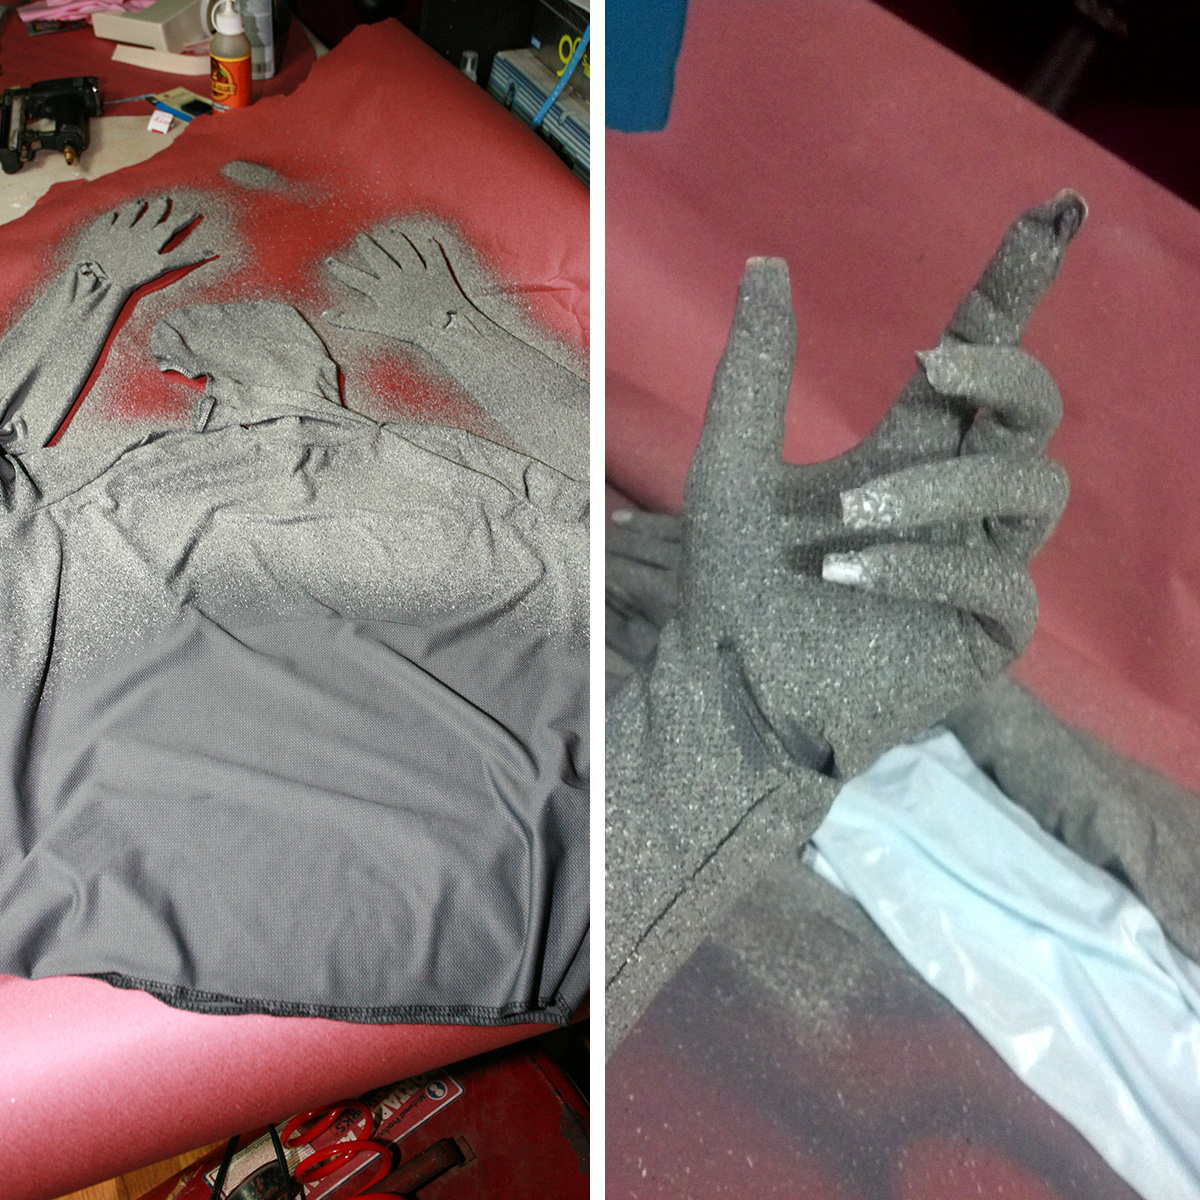 A grey bodysuit being painted with stone look paint, and a hand wearing the grey bodysuit.